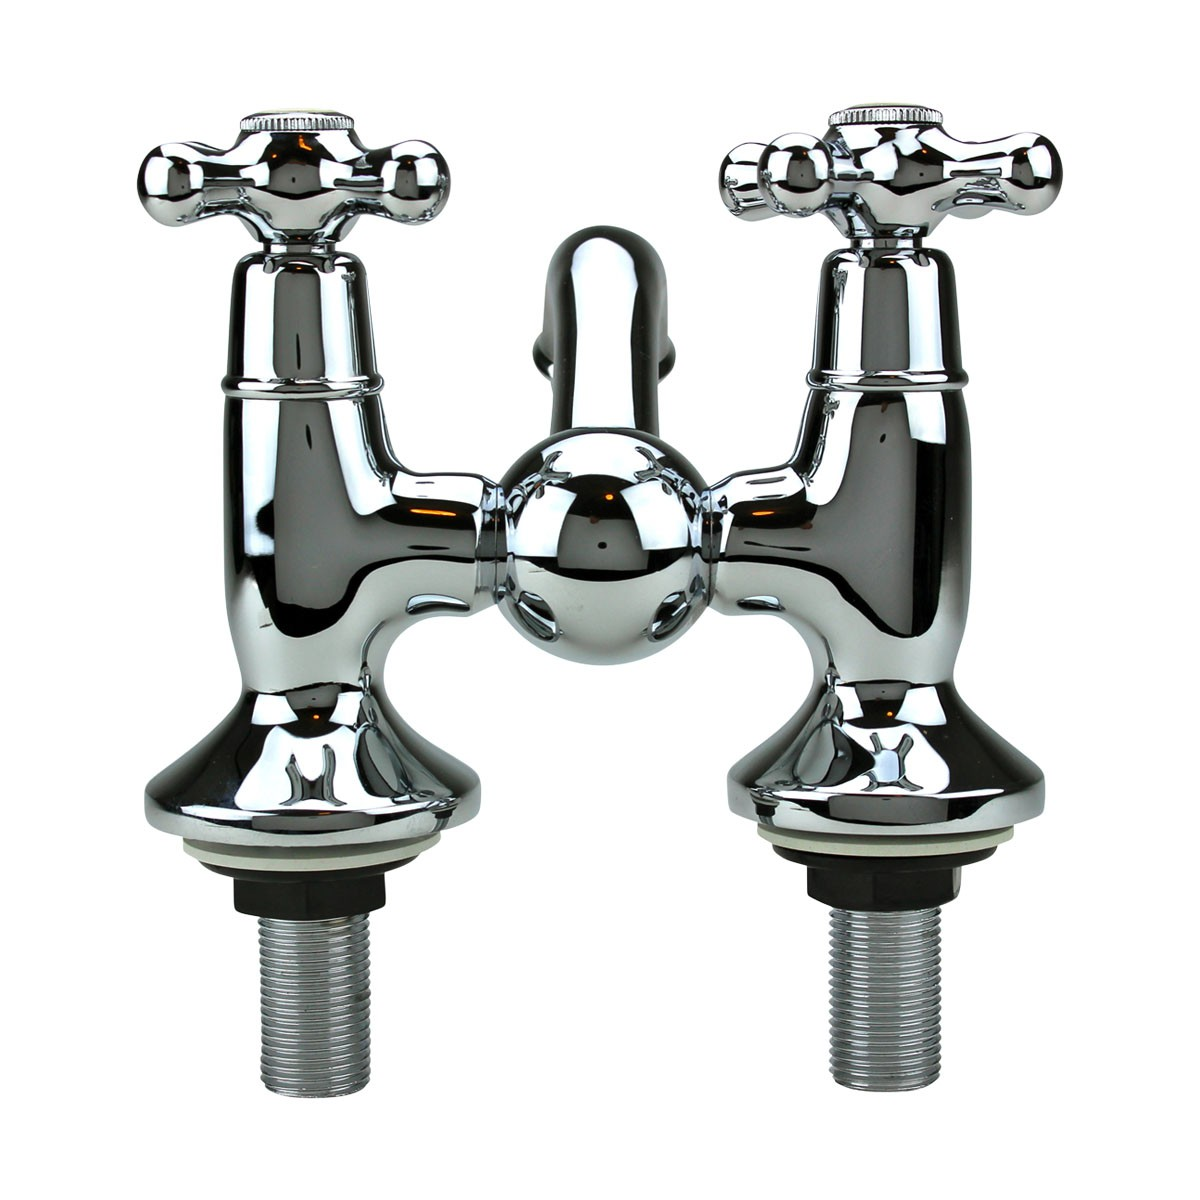 Tub Faucet Chrome Bridge 2 Cross Handle 4 Centerset 4 inch Bathroom Tub Faucets Centerset Faucet 4 Double Handle Faucet